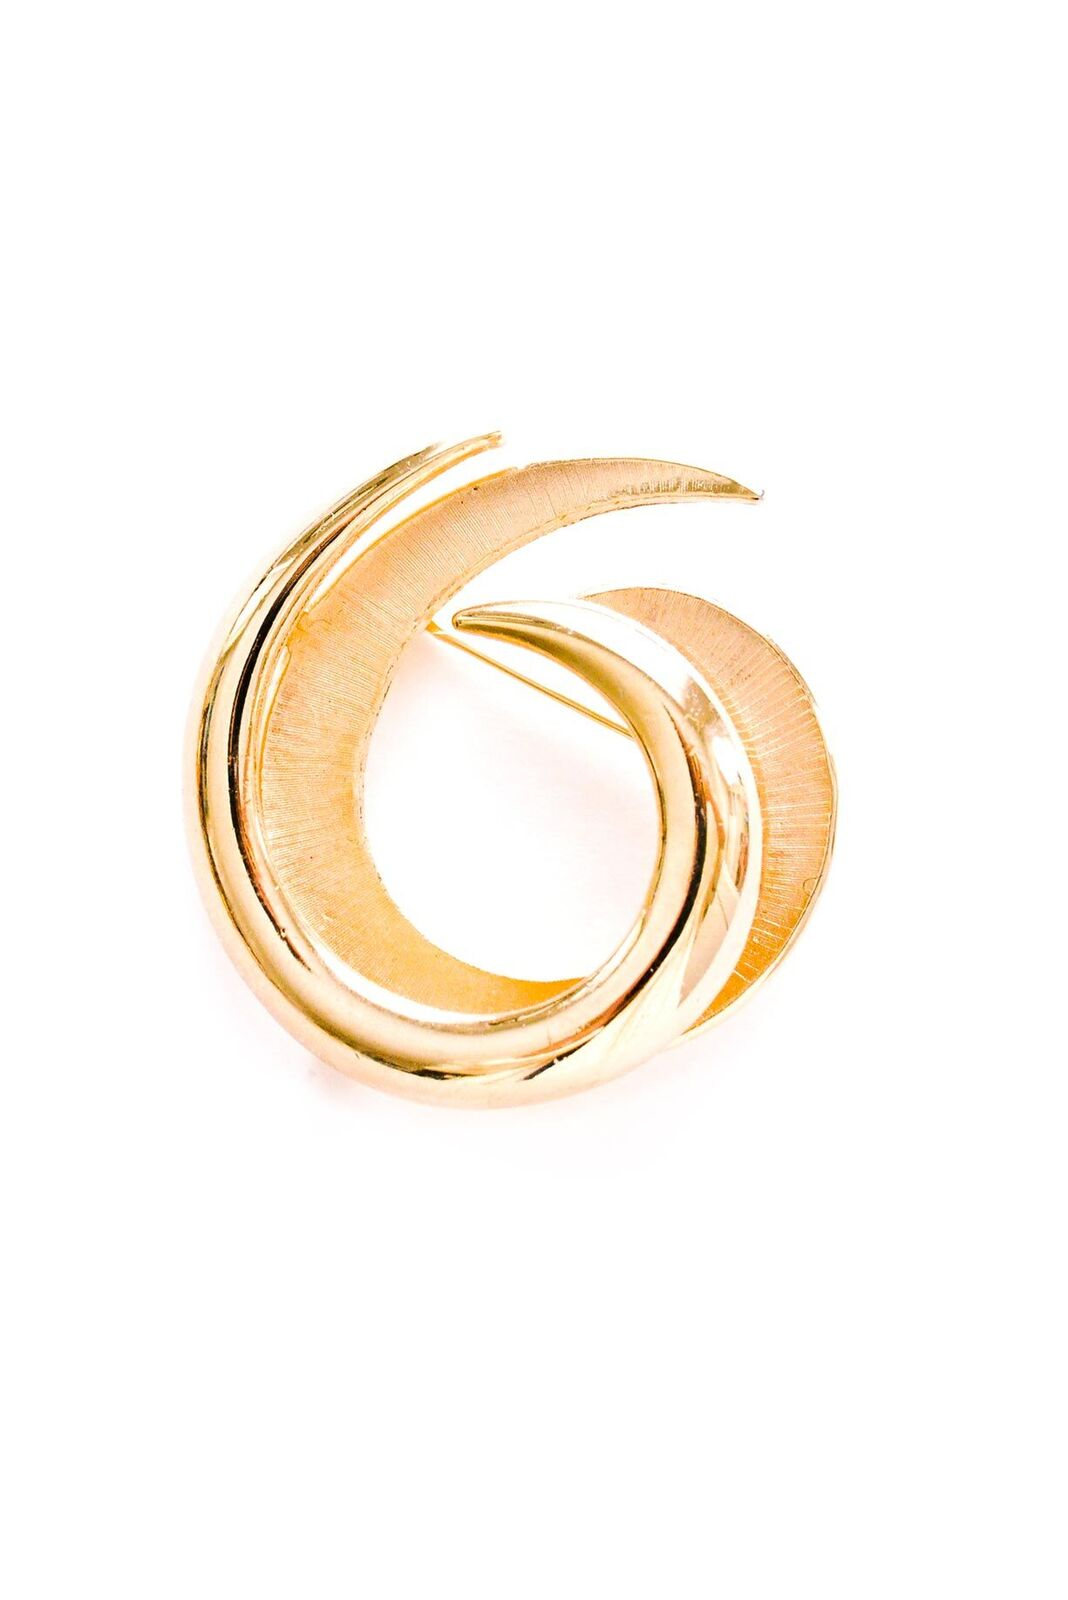 Vintage Trifari Gold Classic Swirl Brooch from Sweet & Spark